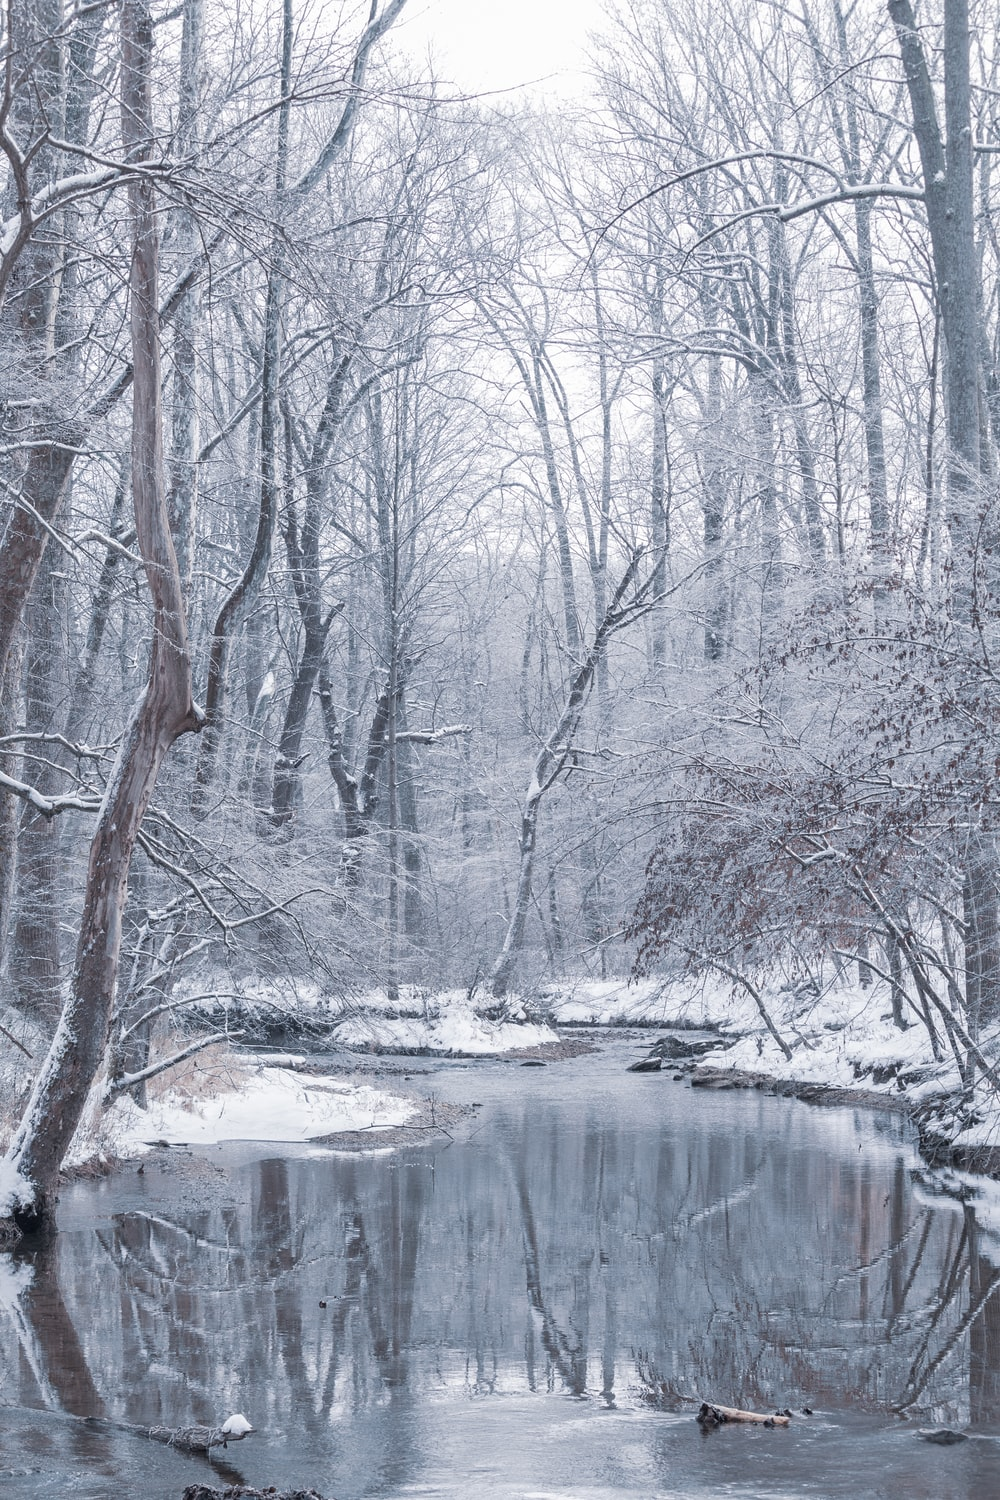 body of water between bare trees during daytime